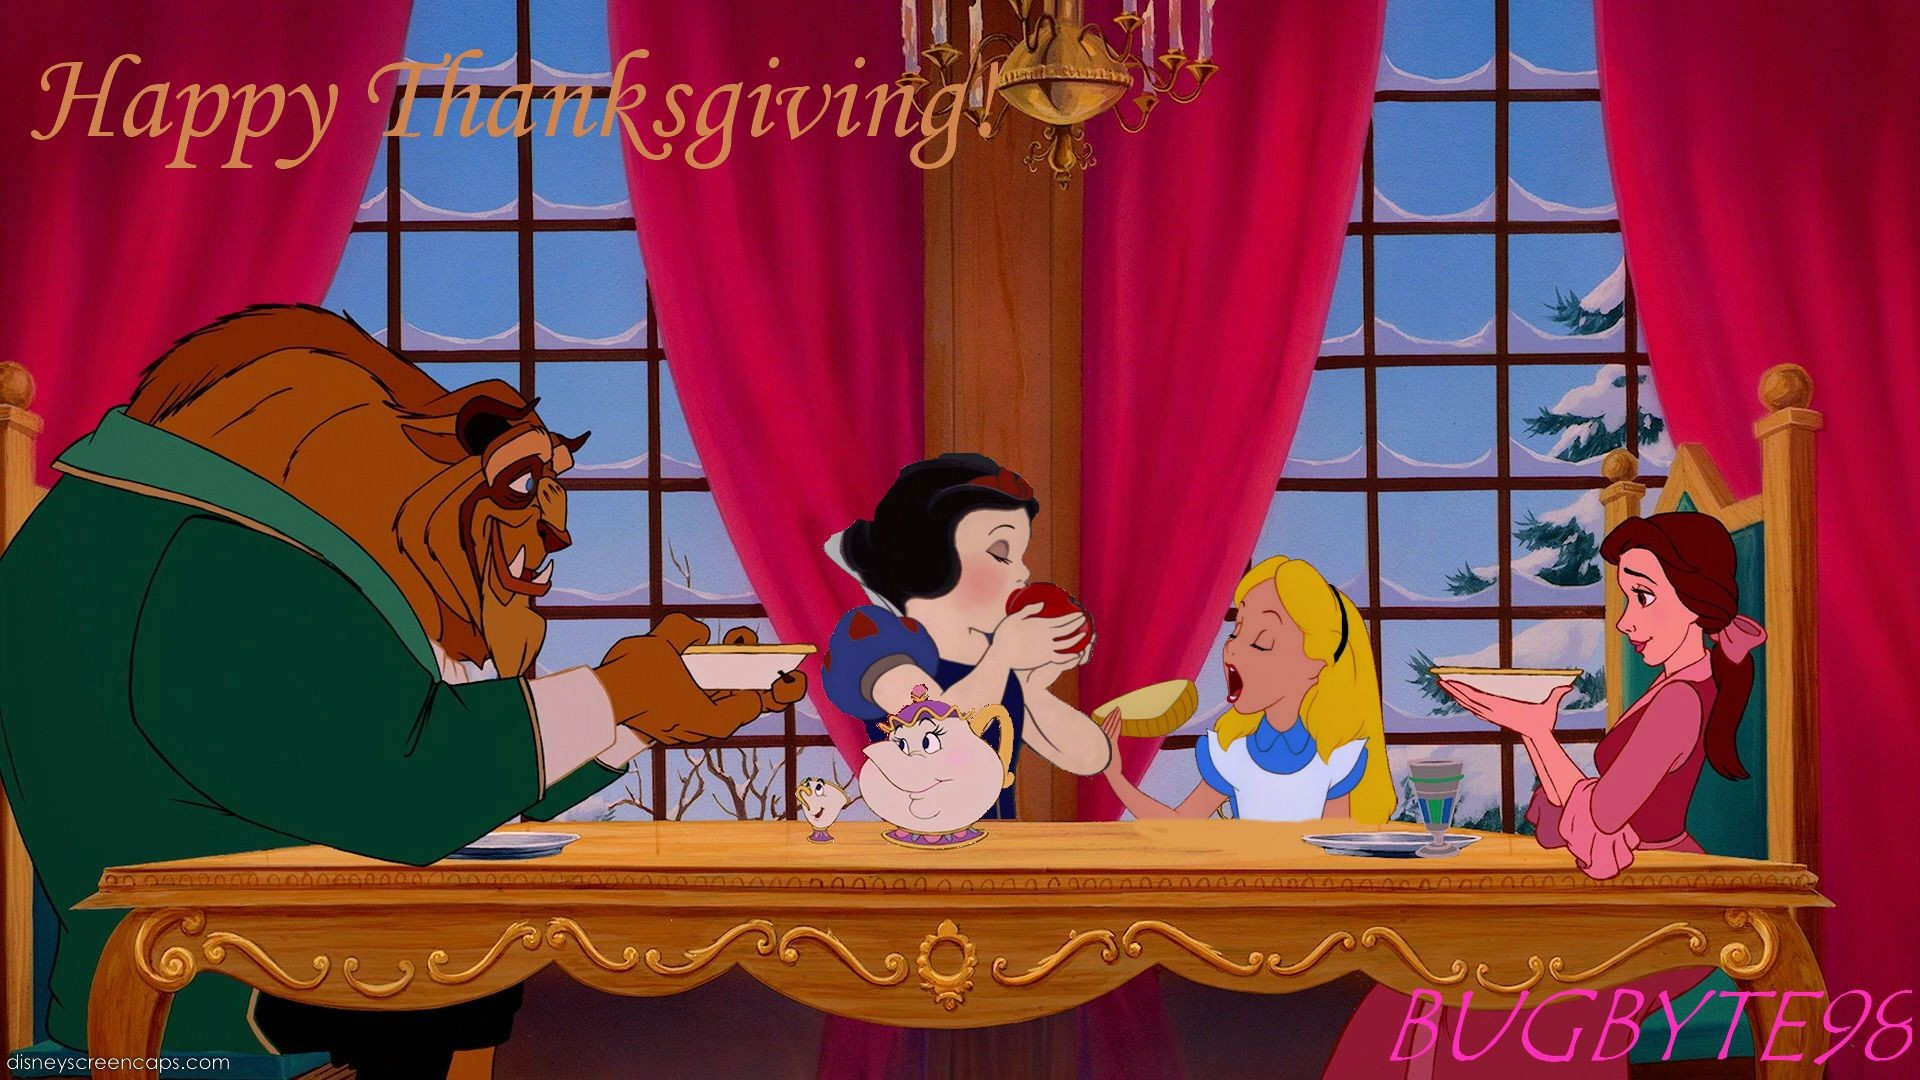 Disney Thanksgiving Desktop Wallpaper 59 Images